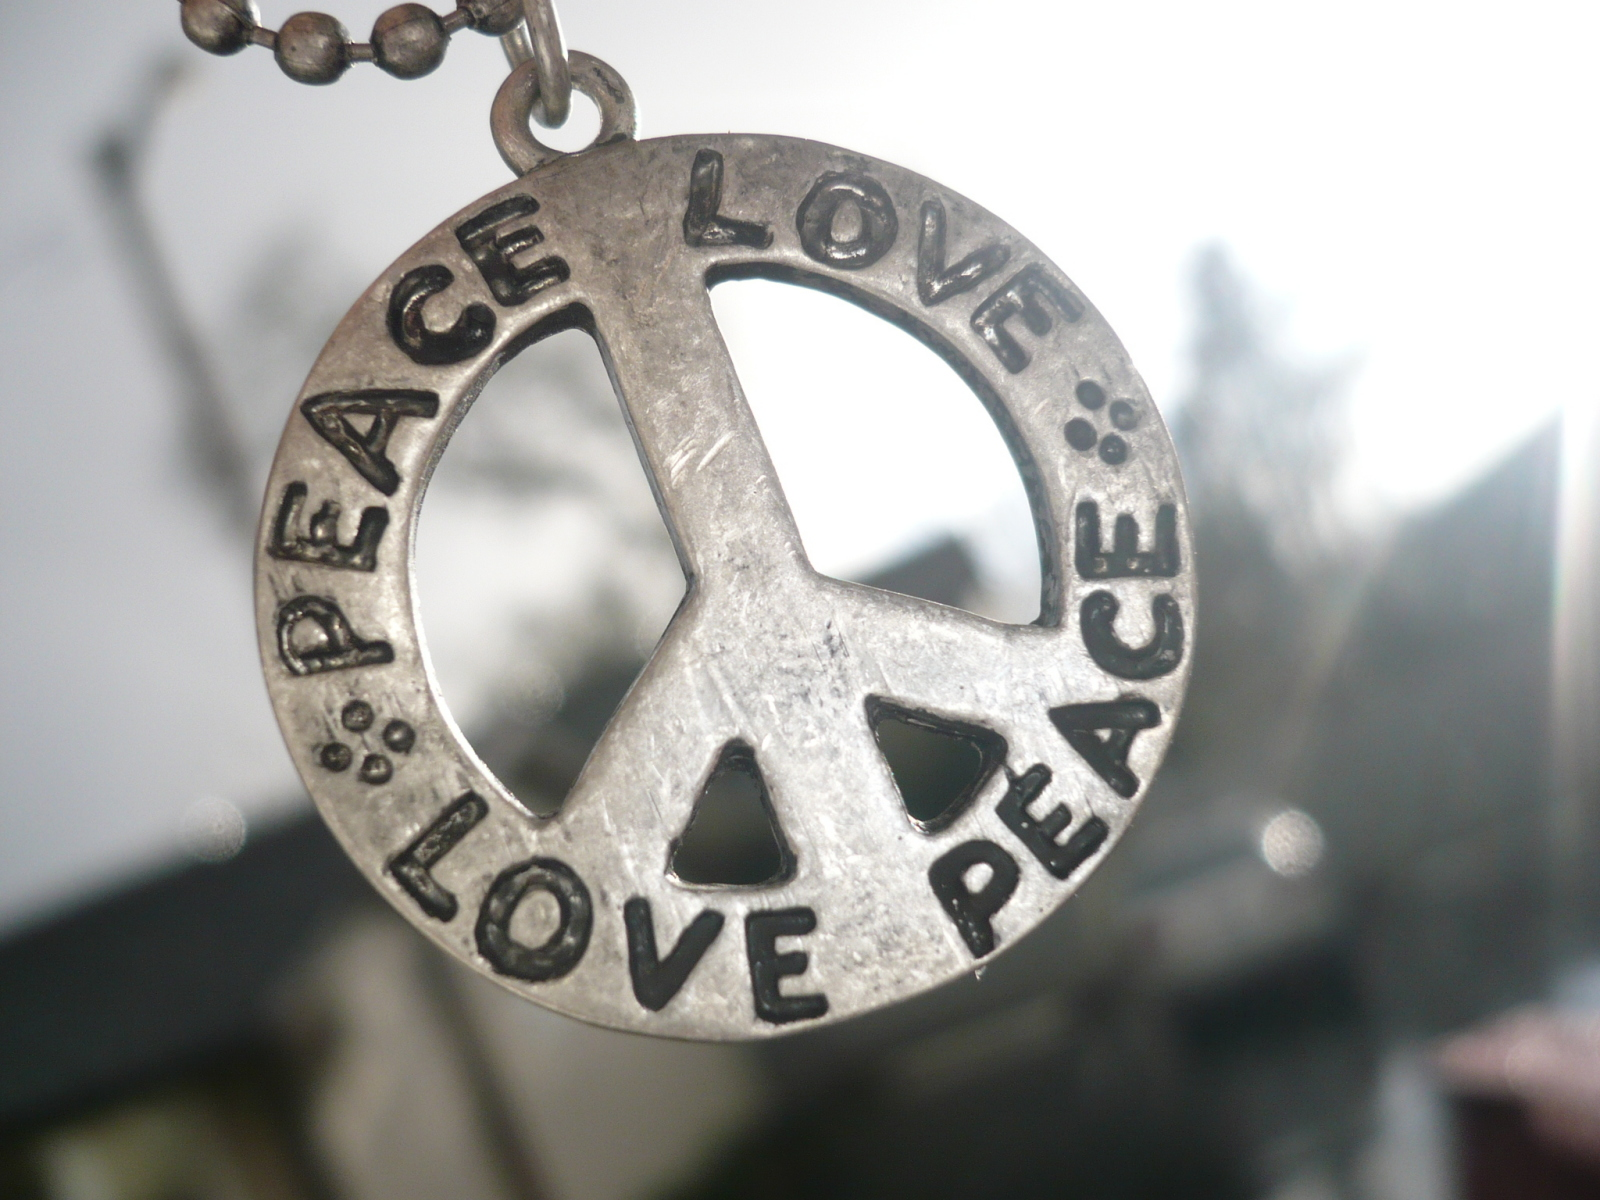 peace and love Find album reviews, stream songs, credits and award information for peace and love - the pogues on allmusic - 1989 - shane macgowan's.